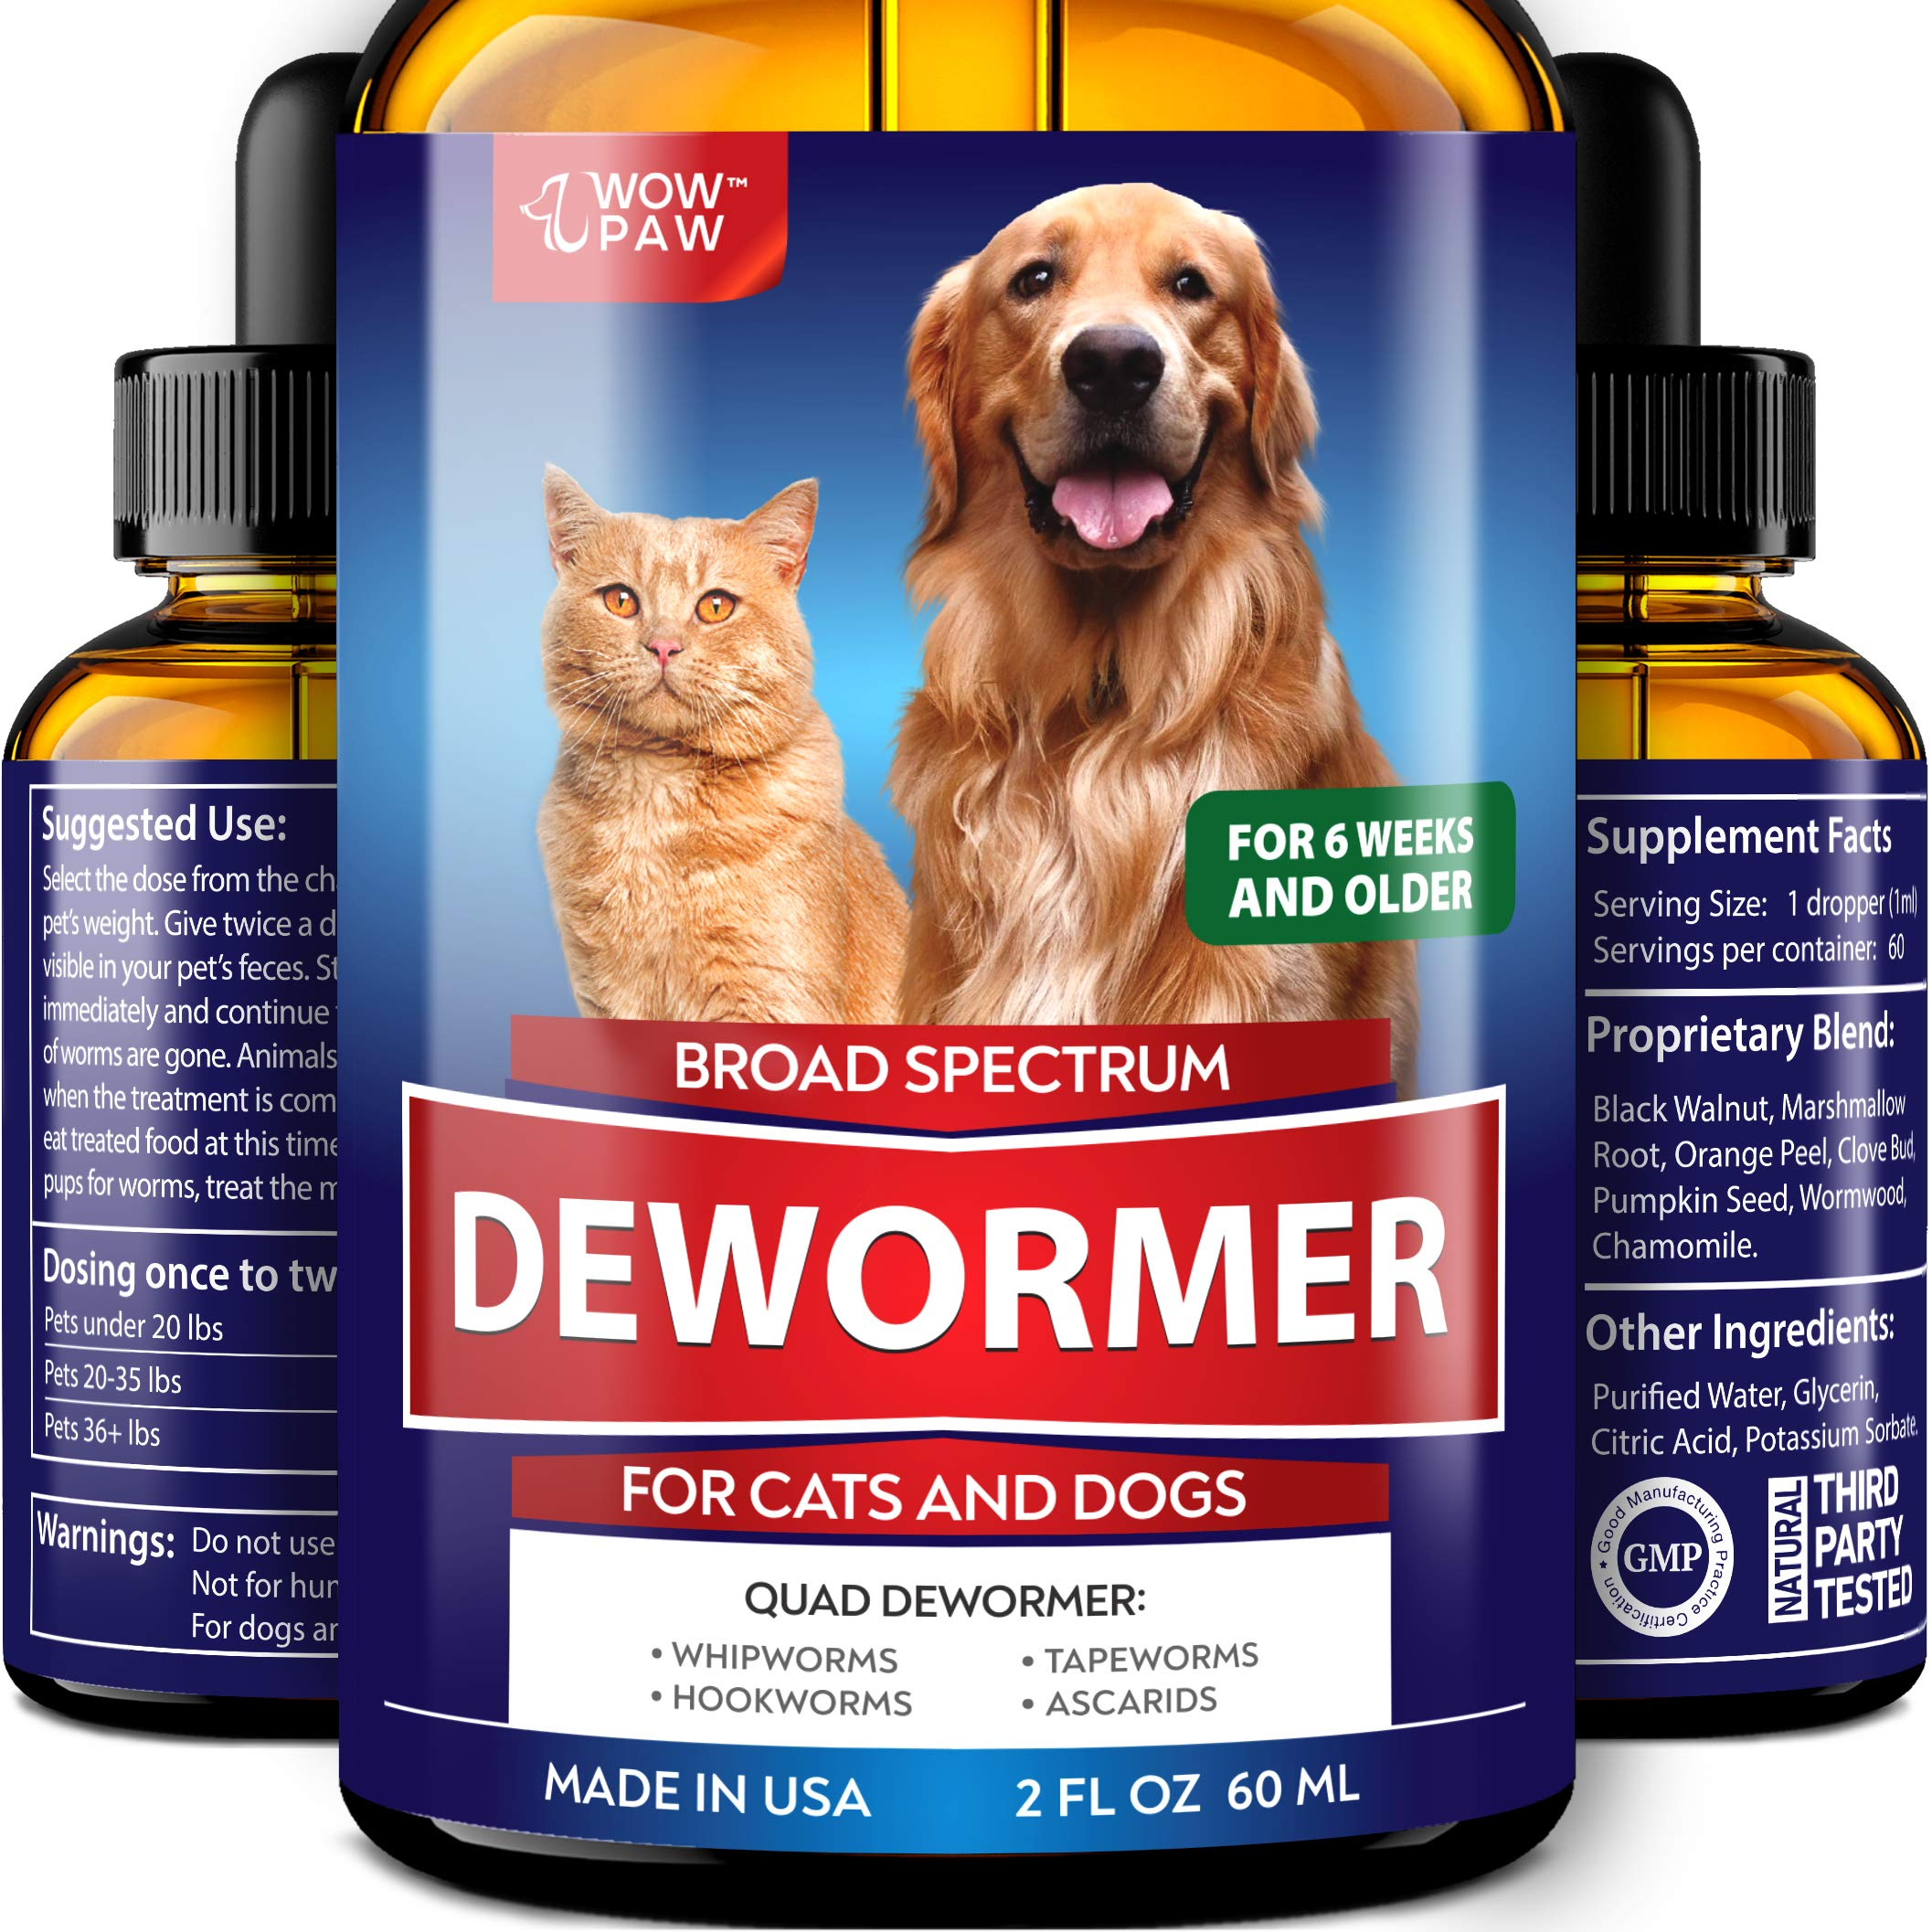 WOWPAW DEW0RMER for Dogs & Cats (2 OZ) - Made in USA - Wоrm Treatment for Pets - Natural Powerful Blend Against Whipworm, Hookwоrm, Roundwоrm & Tapewоrm - Senior Pets, Kitten & Puppy Dewоrmer by Wow Paw